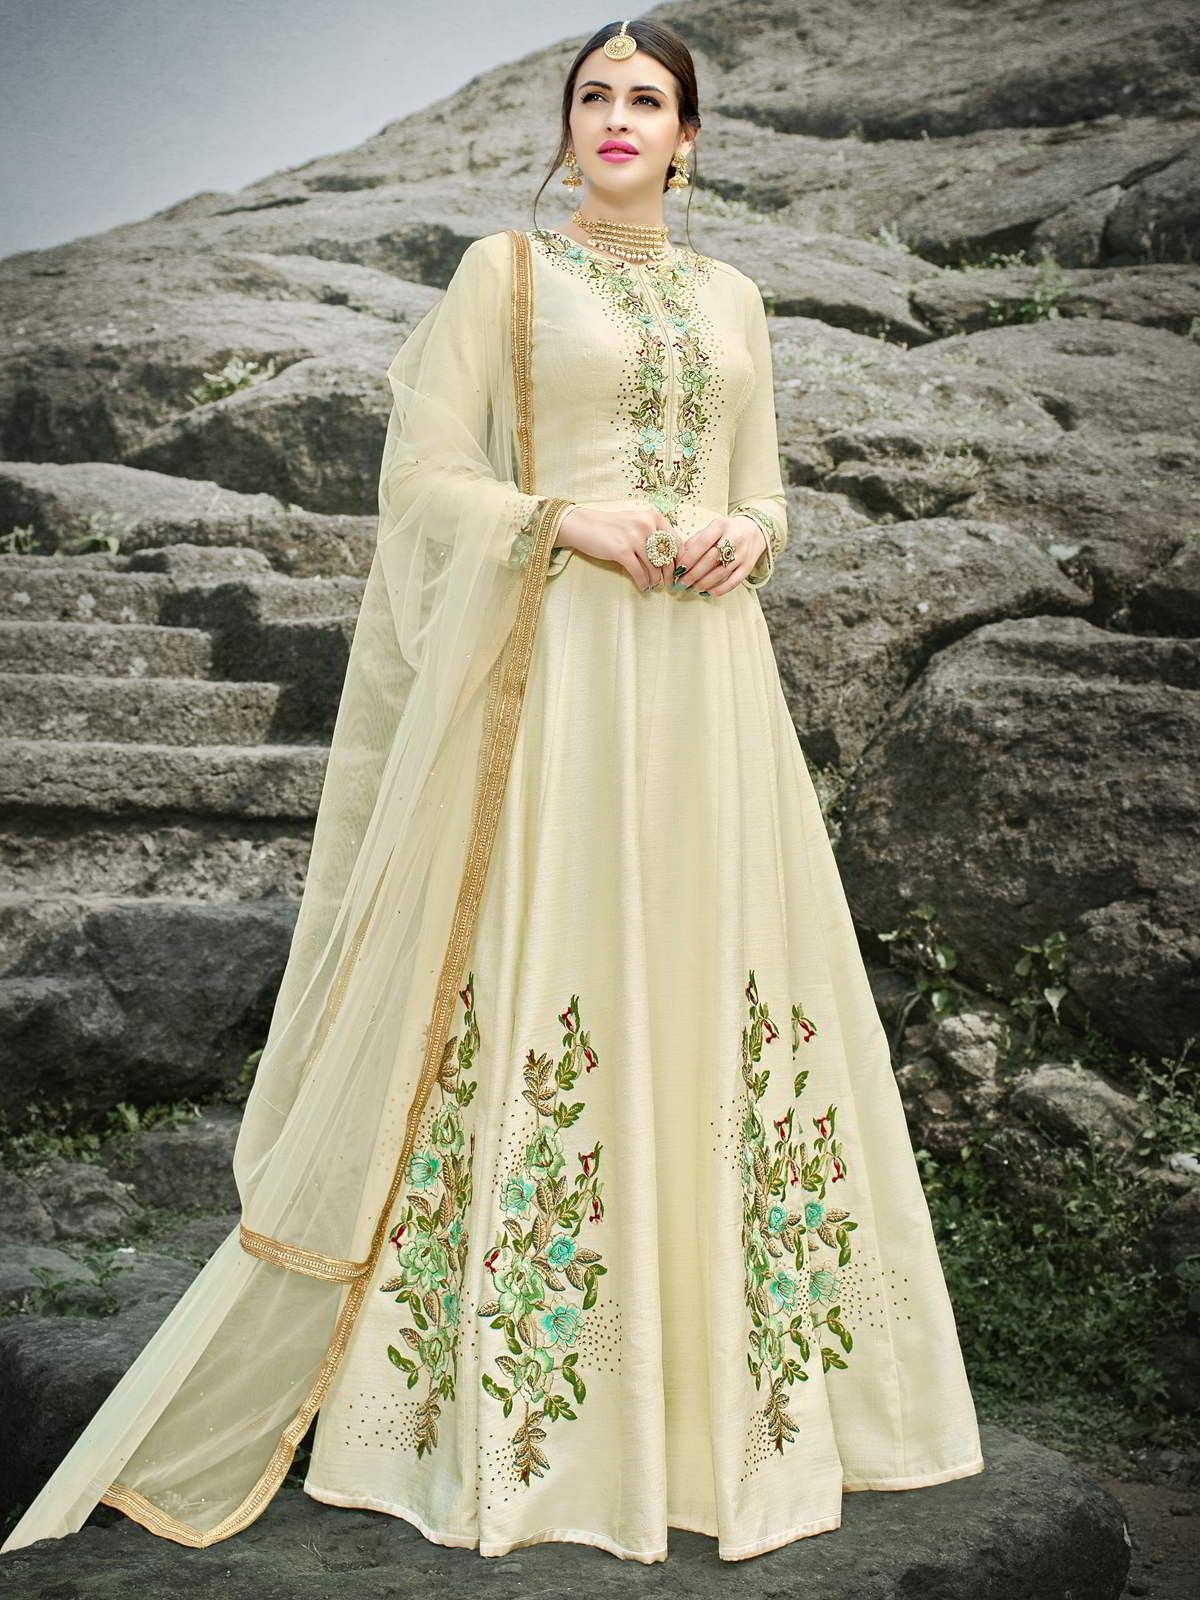 77a56fb06c Adorable off white partywear anarkali suit online which is crafted from  chennai silk fabric with exclusive embroidery work. This stunning designer  anarkali ...